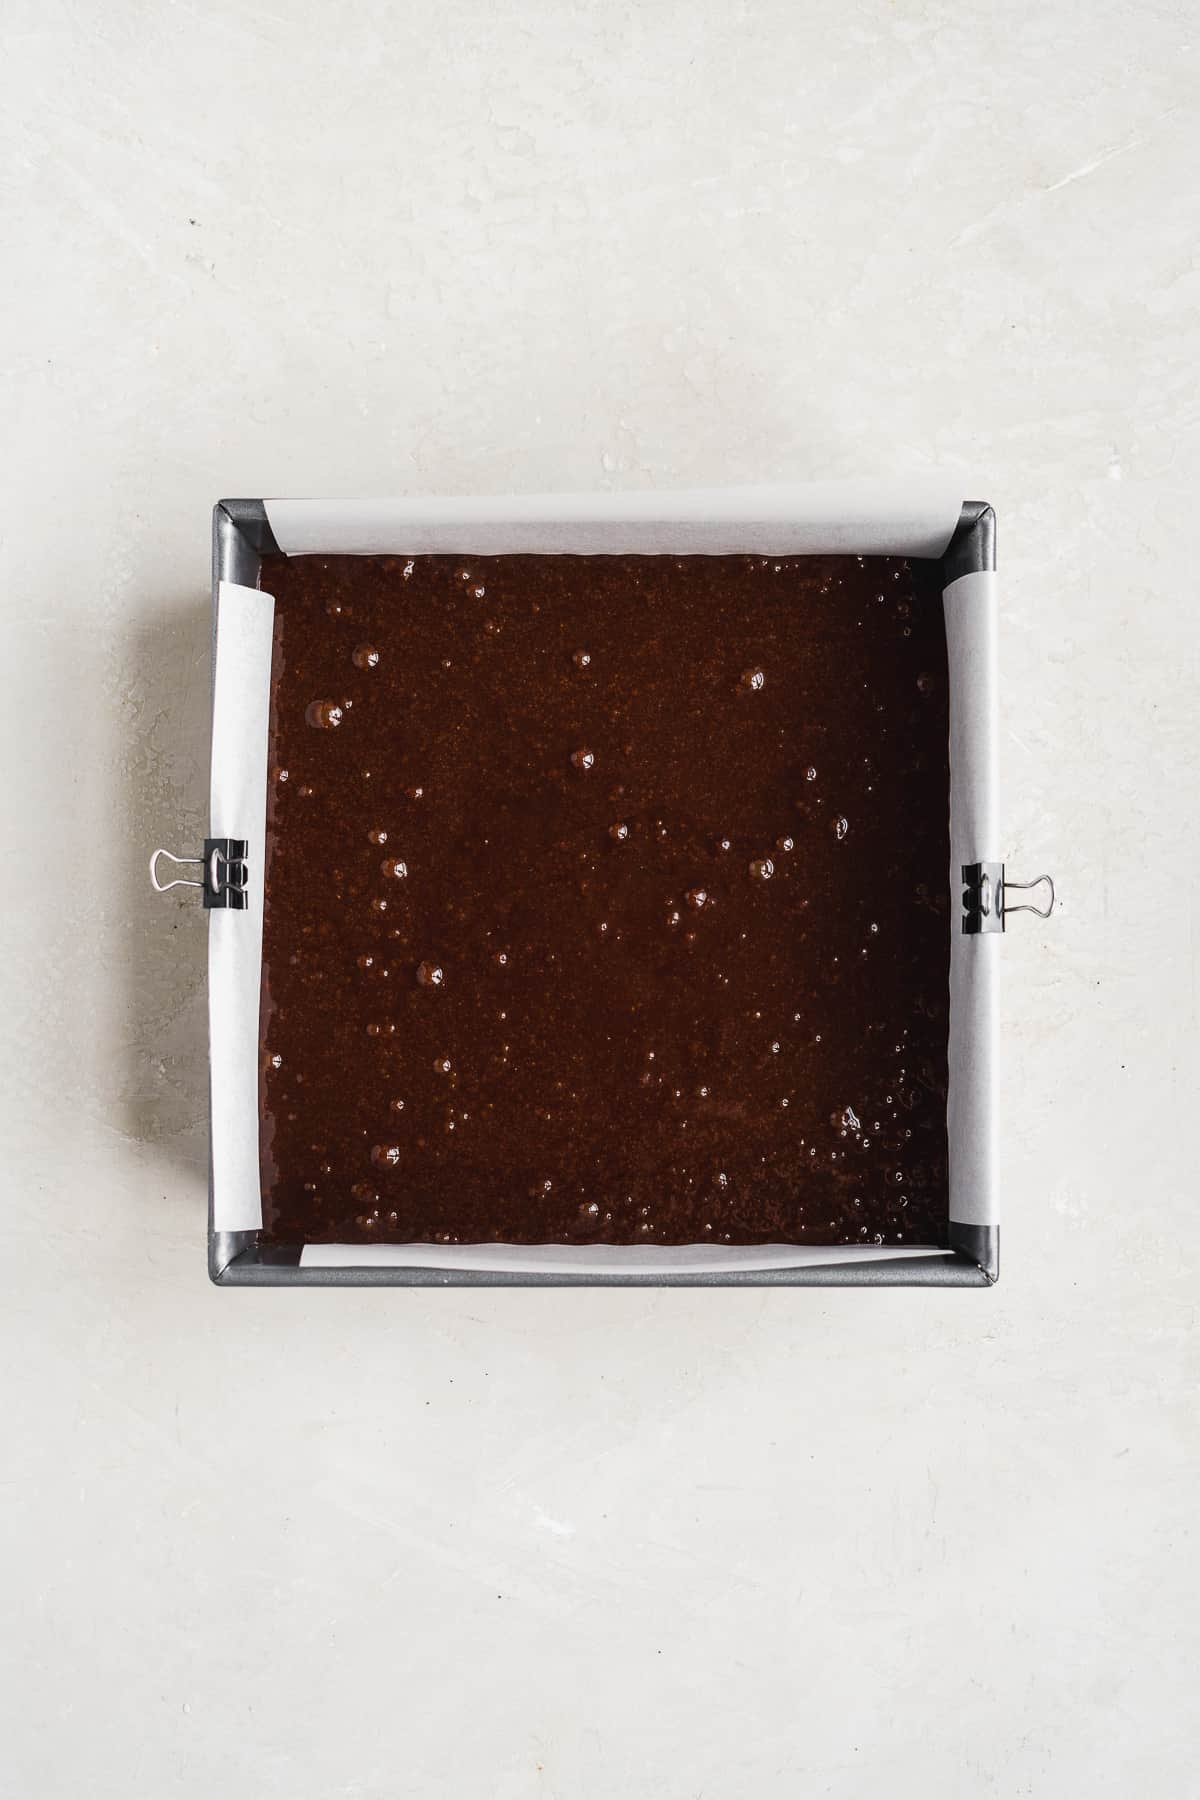 Baking pan filled with chocolate brownie batter on a white surface.